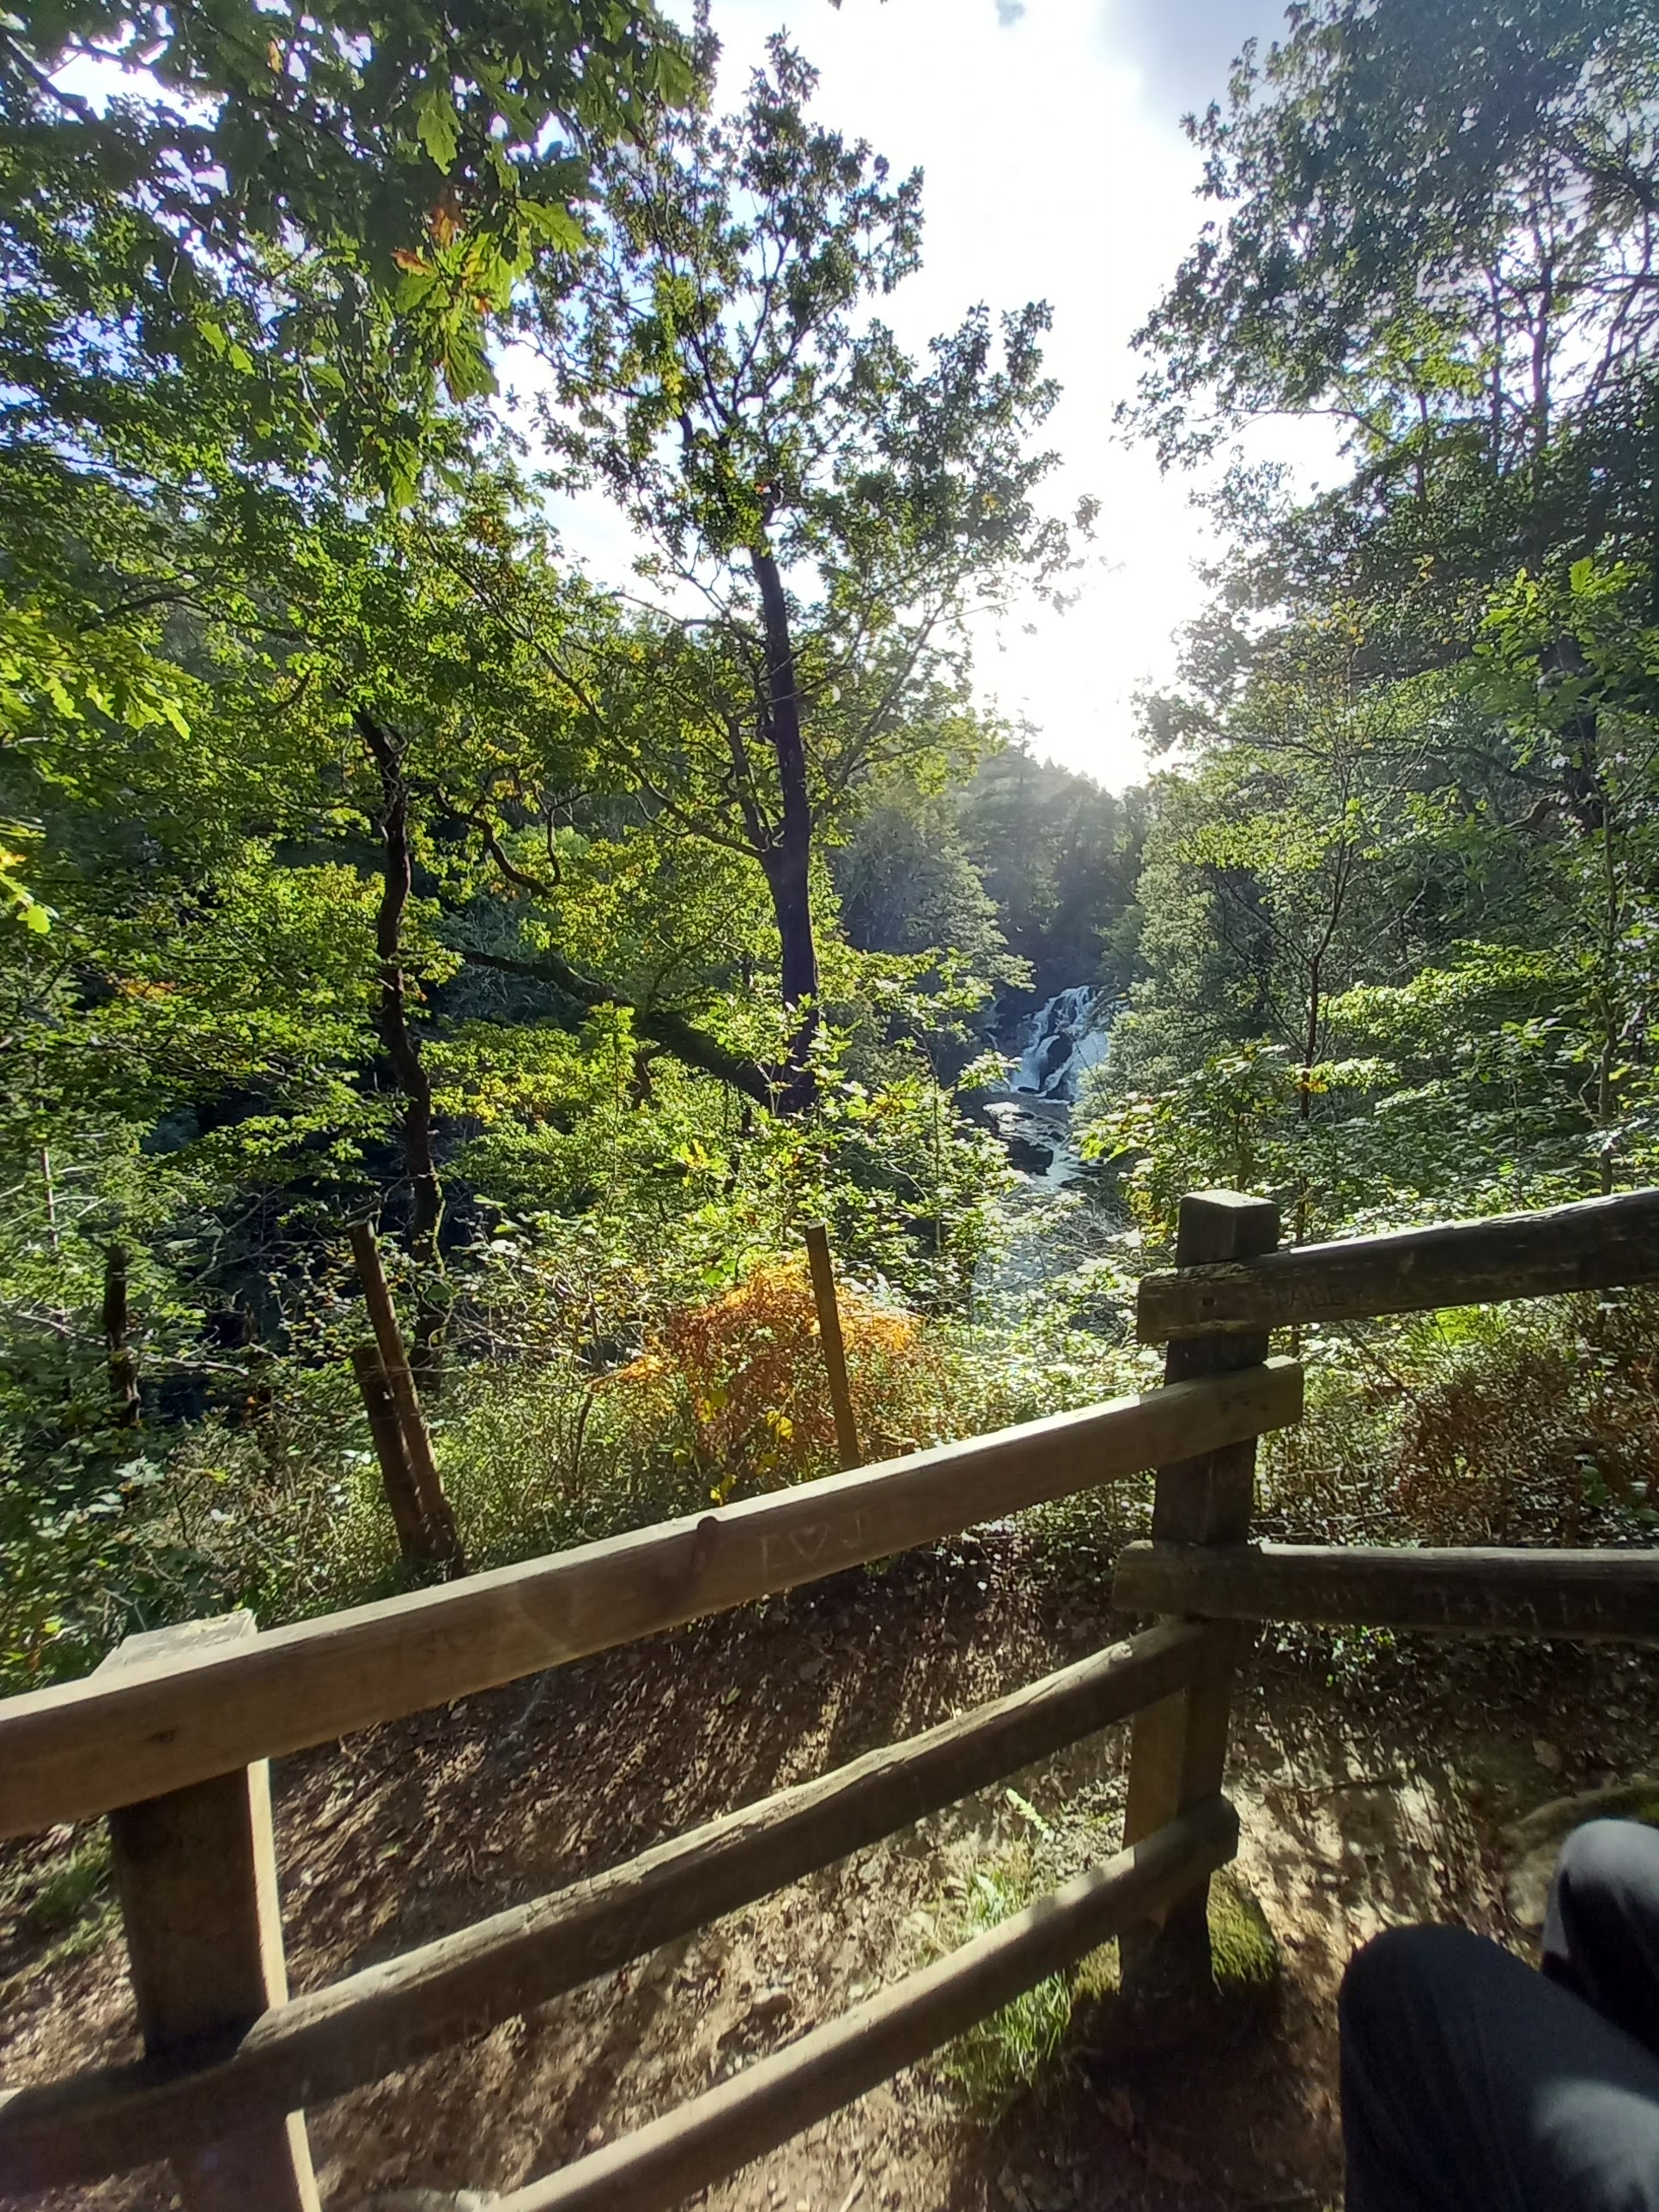 Photo looking across a wooden fence through trees that are just starting to turn autumnal towards a waterfall. Taken by Diane Woodrow